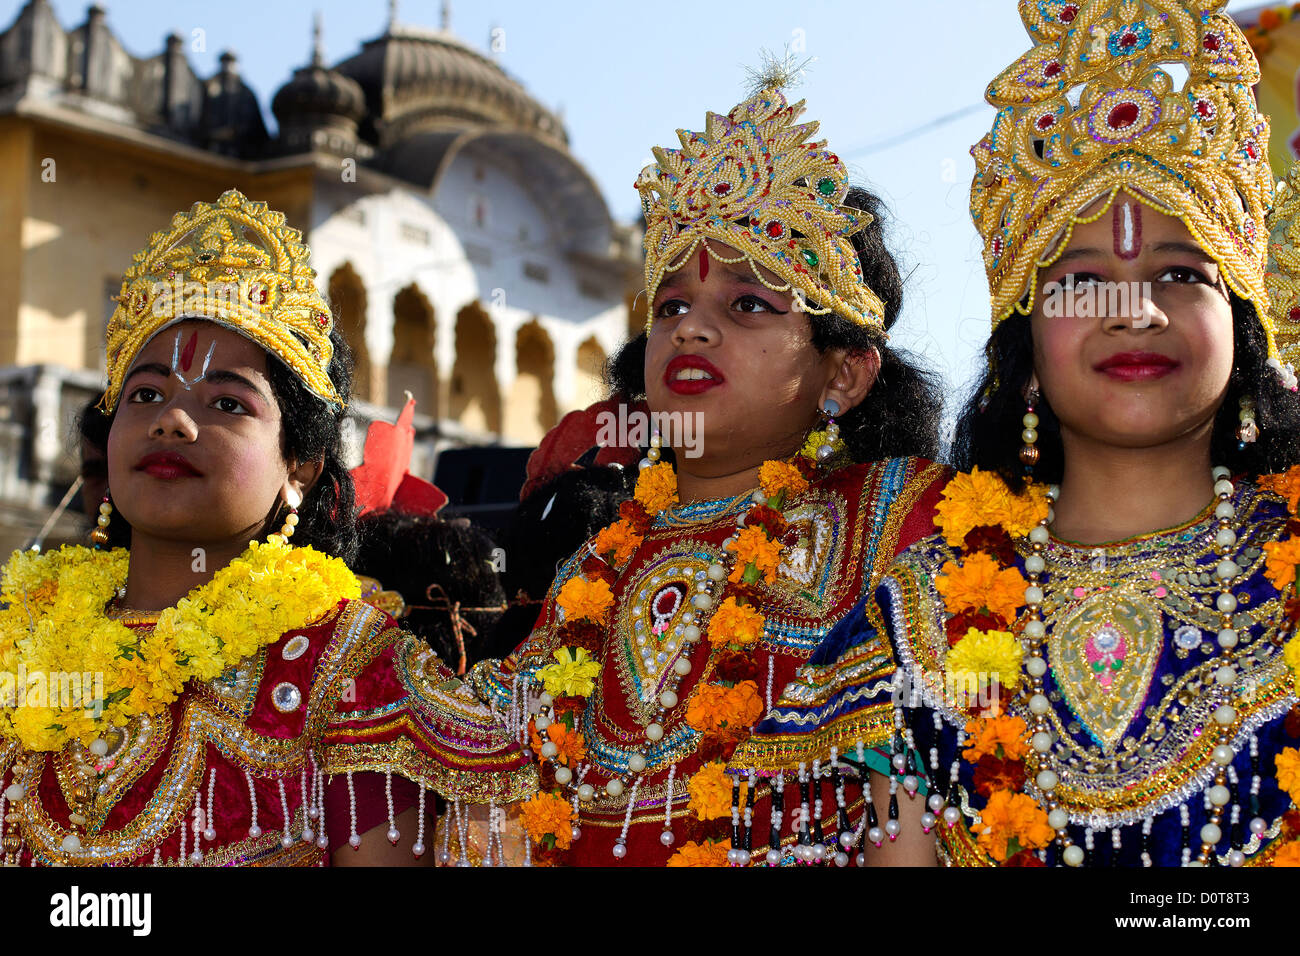 Hinduism Blessing Stock Photos & Hinduism Blessing Stock Images ...